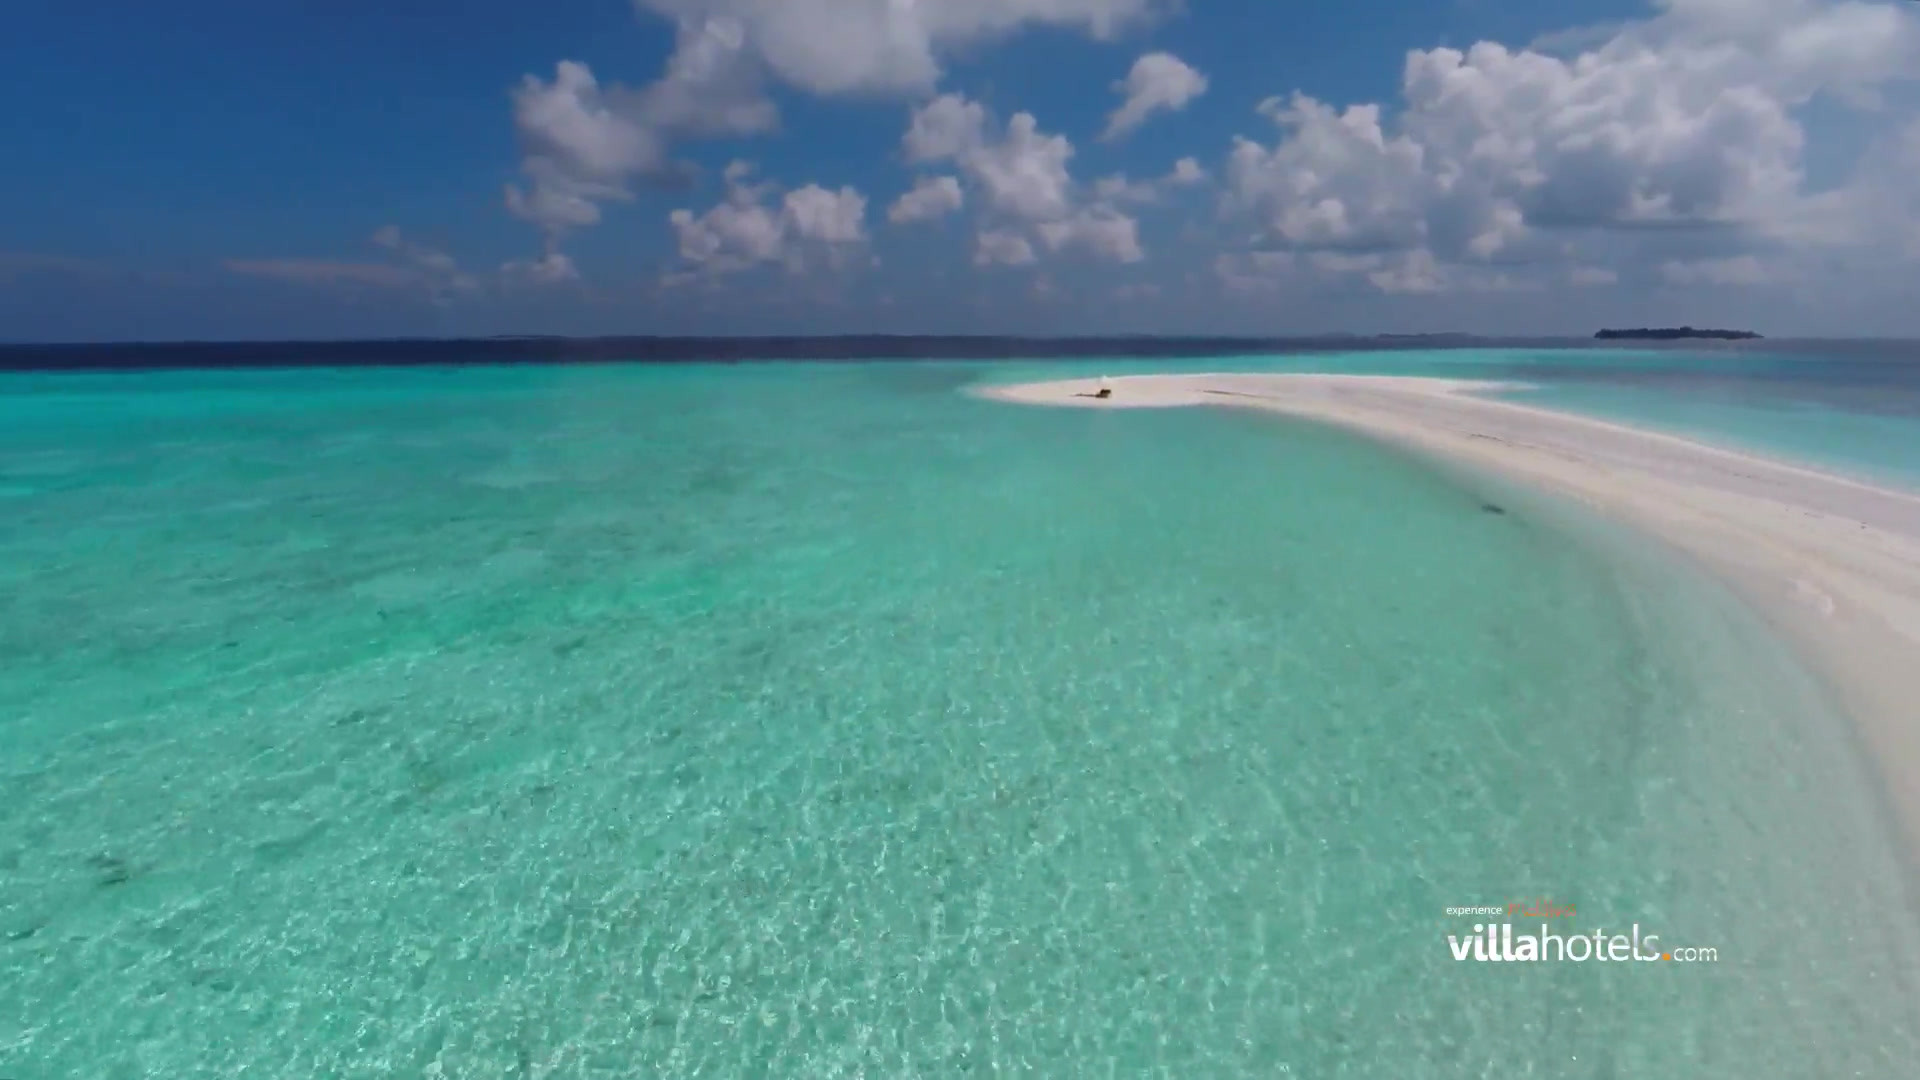 Royal Picnic Island Maldives_x264.mp4